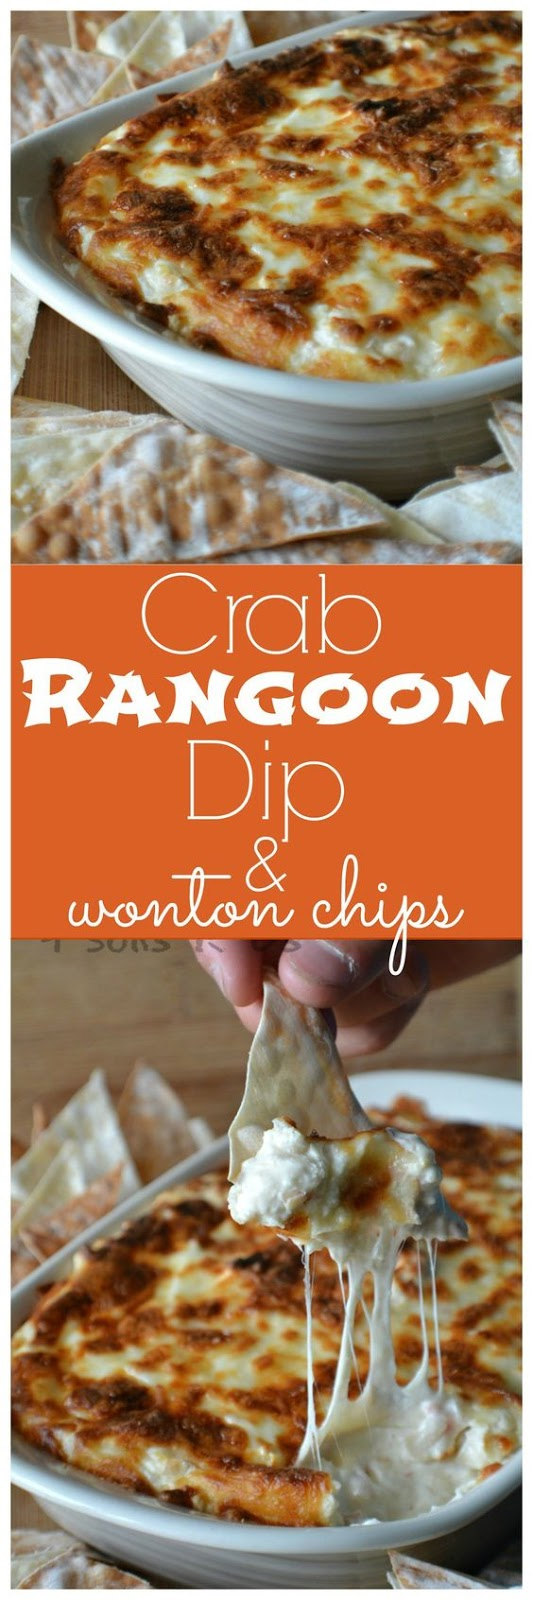 CRAB RANGOON DIP WITH WONTON CHIPS RECIPE